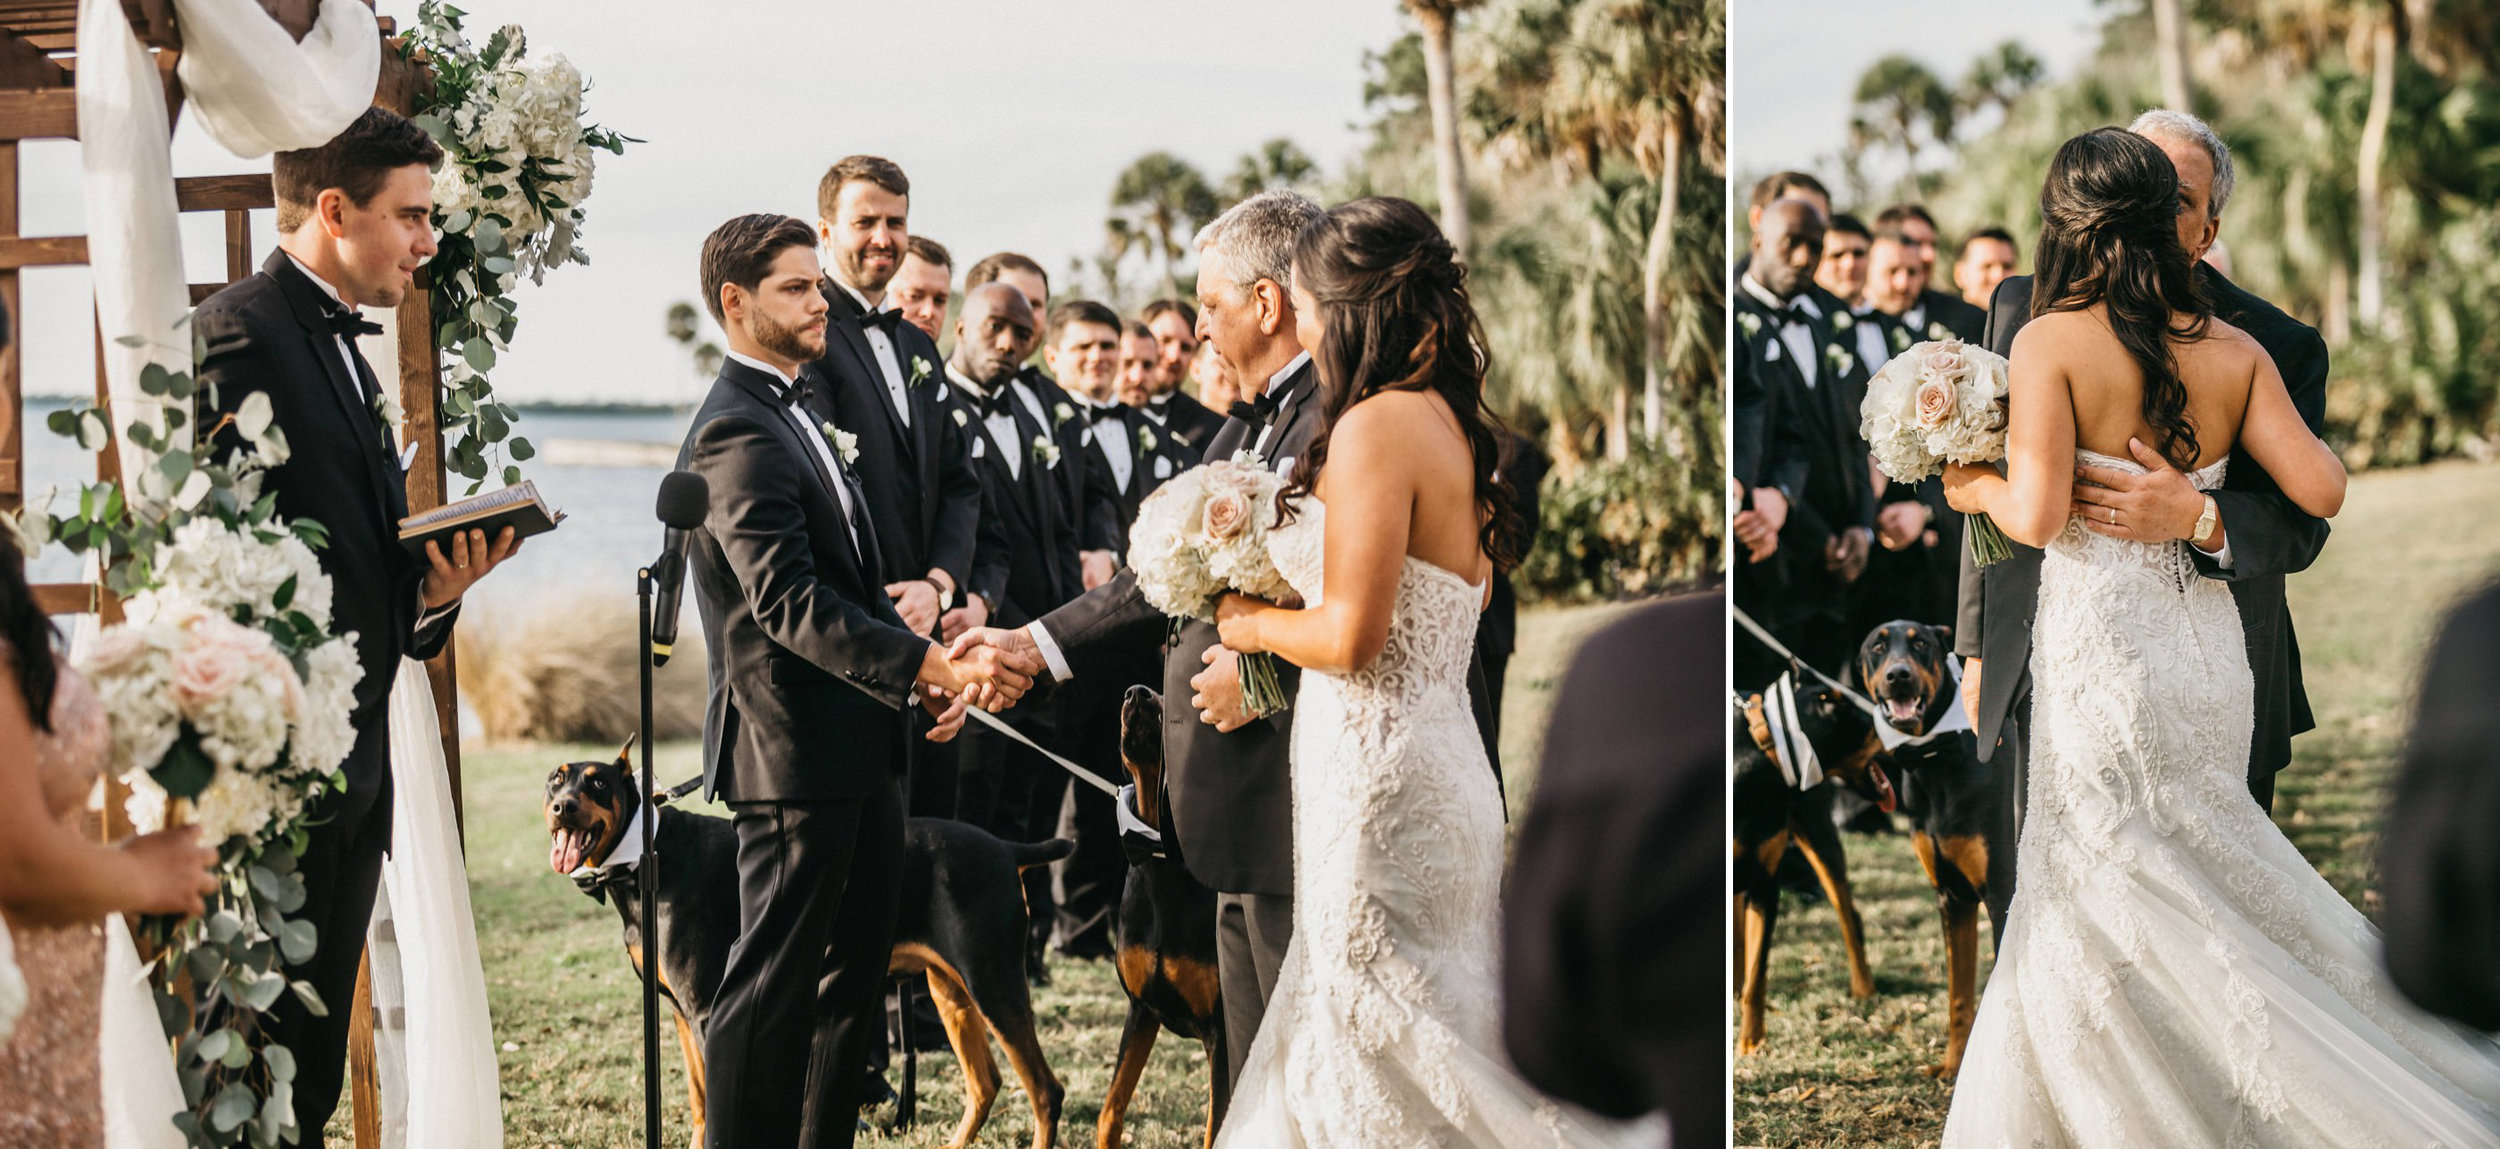 Floral Historic Powel Crosley Estate Wedding Sarasota- Anna + Matthew-74.jpg